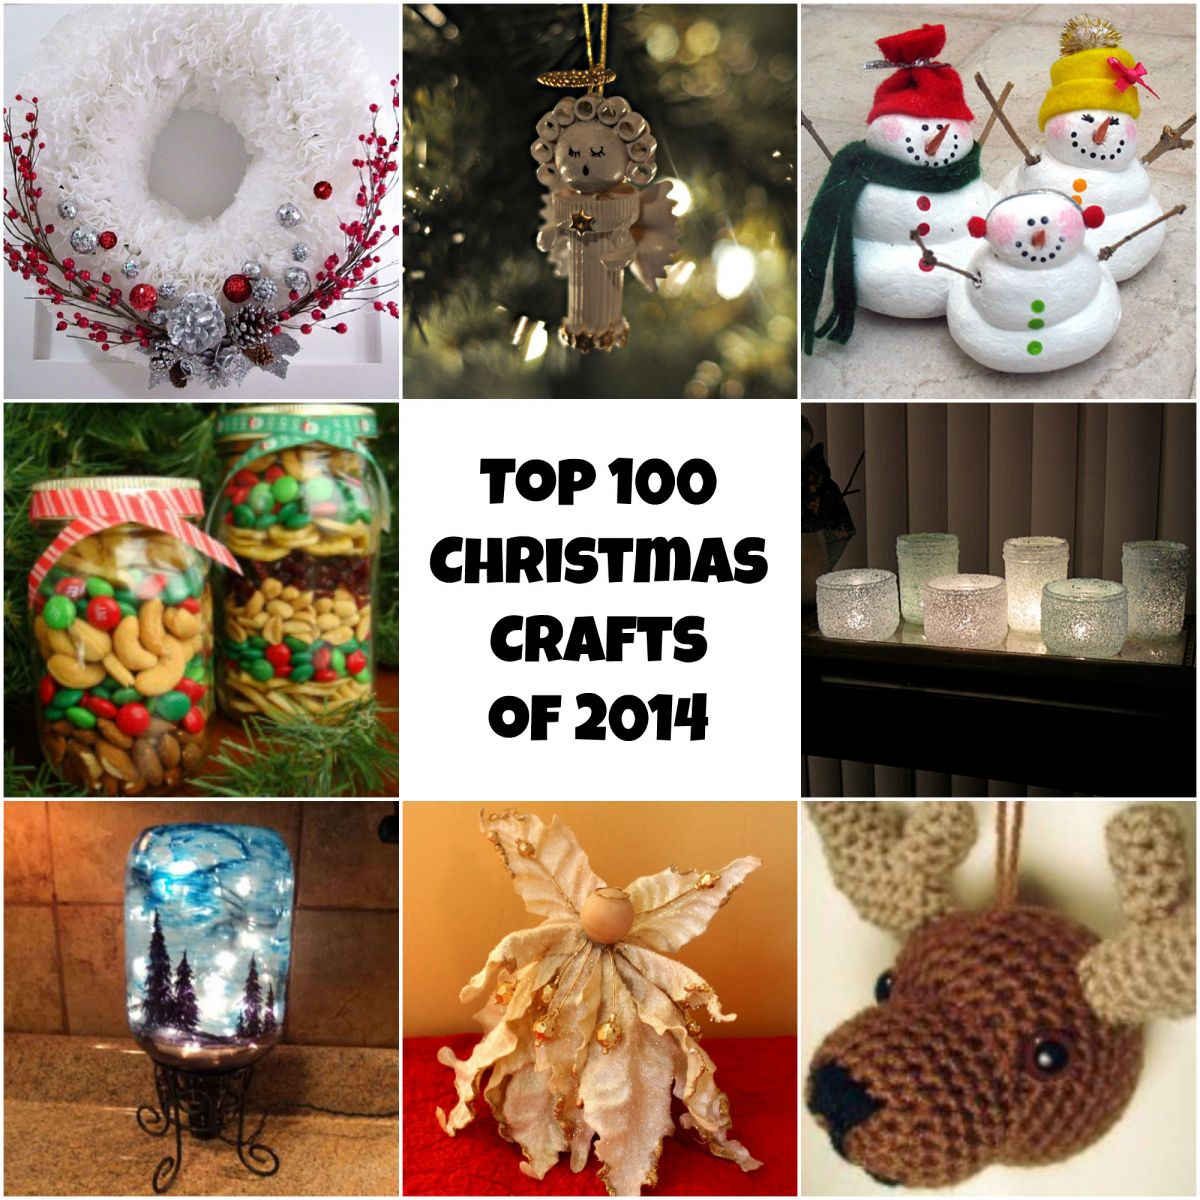 Christmas Decorations Ideas 2014 top 100 diy christmas crafts of 2014: homemade christmas ornaments